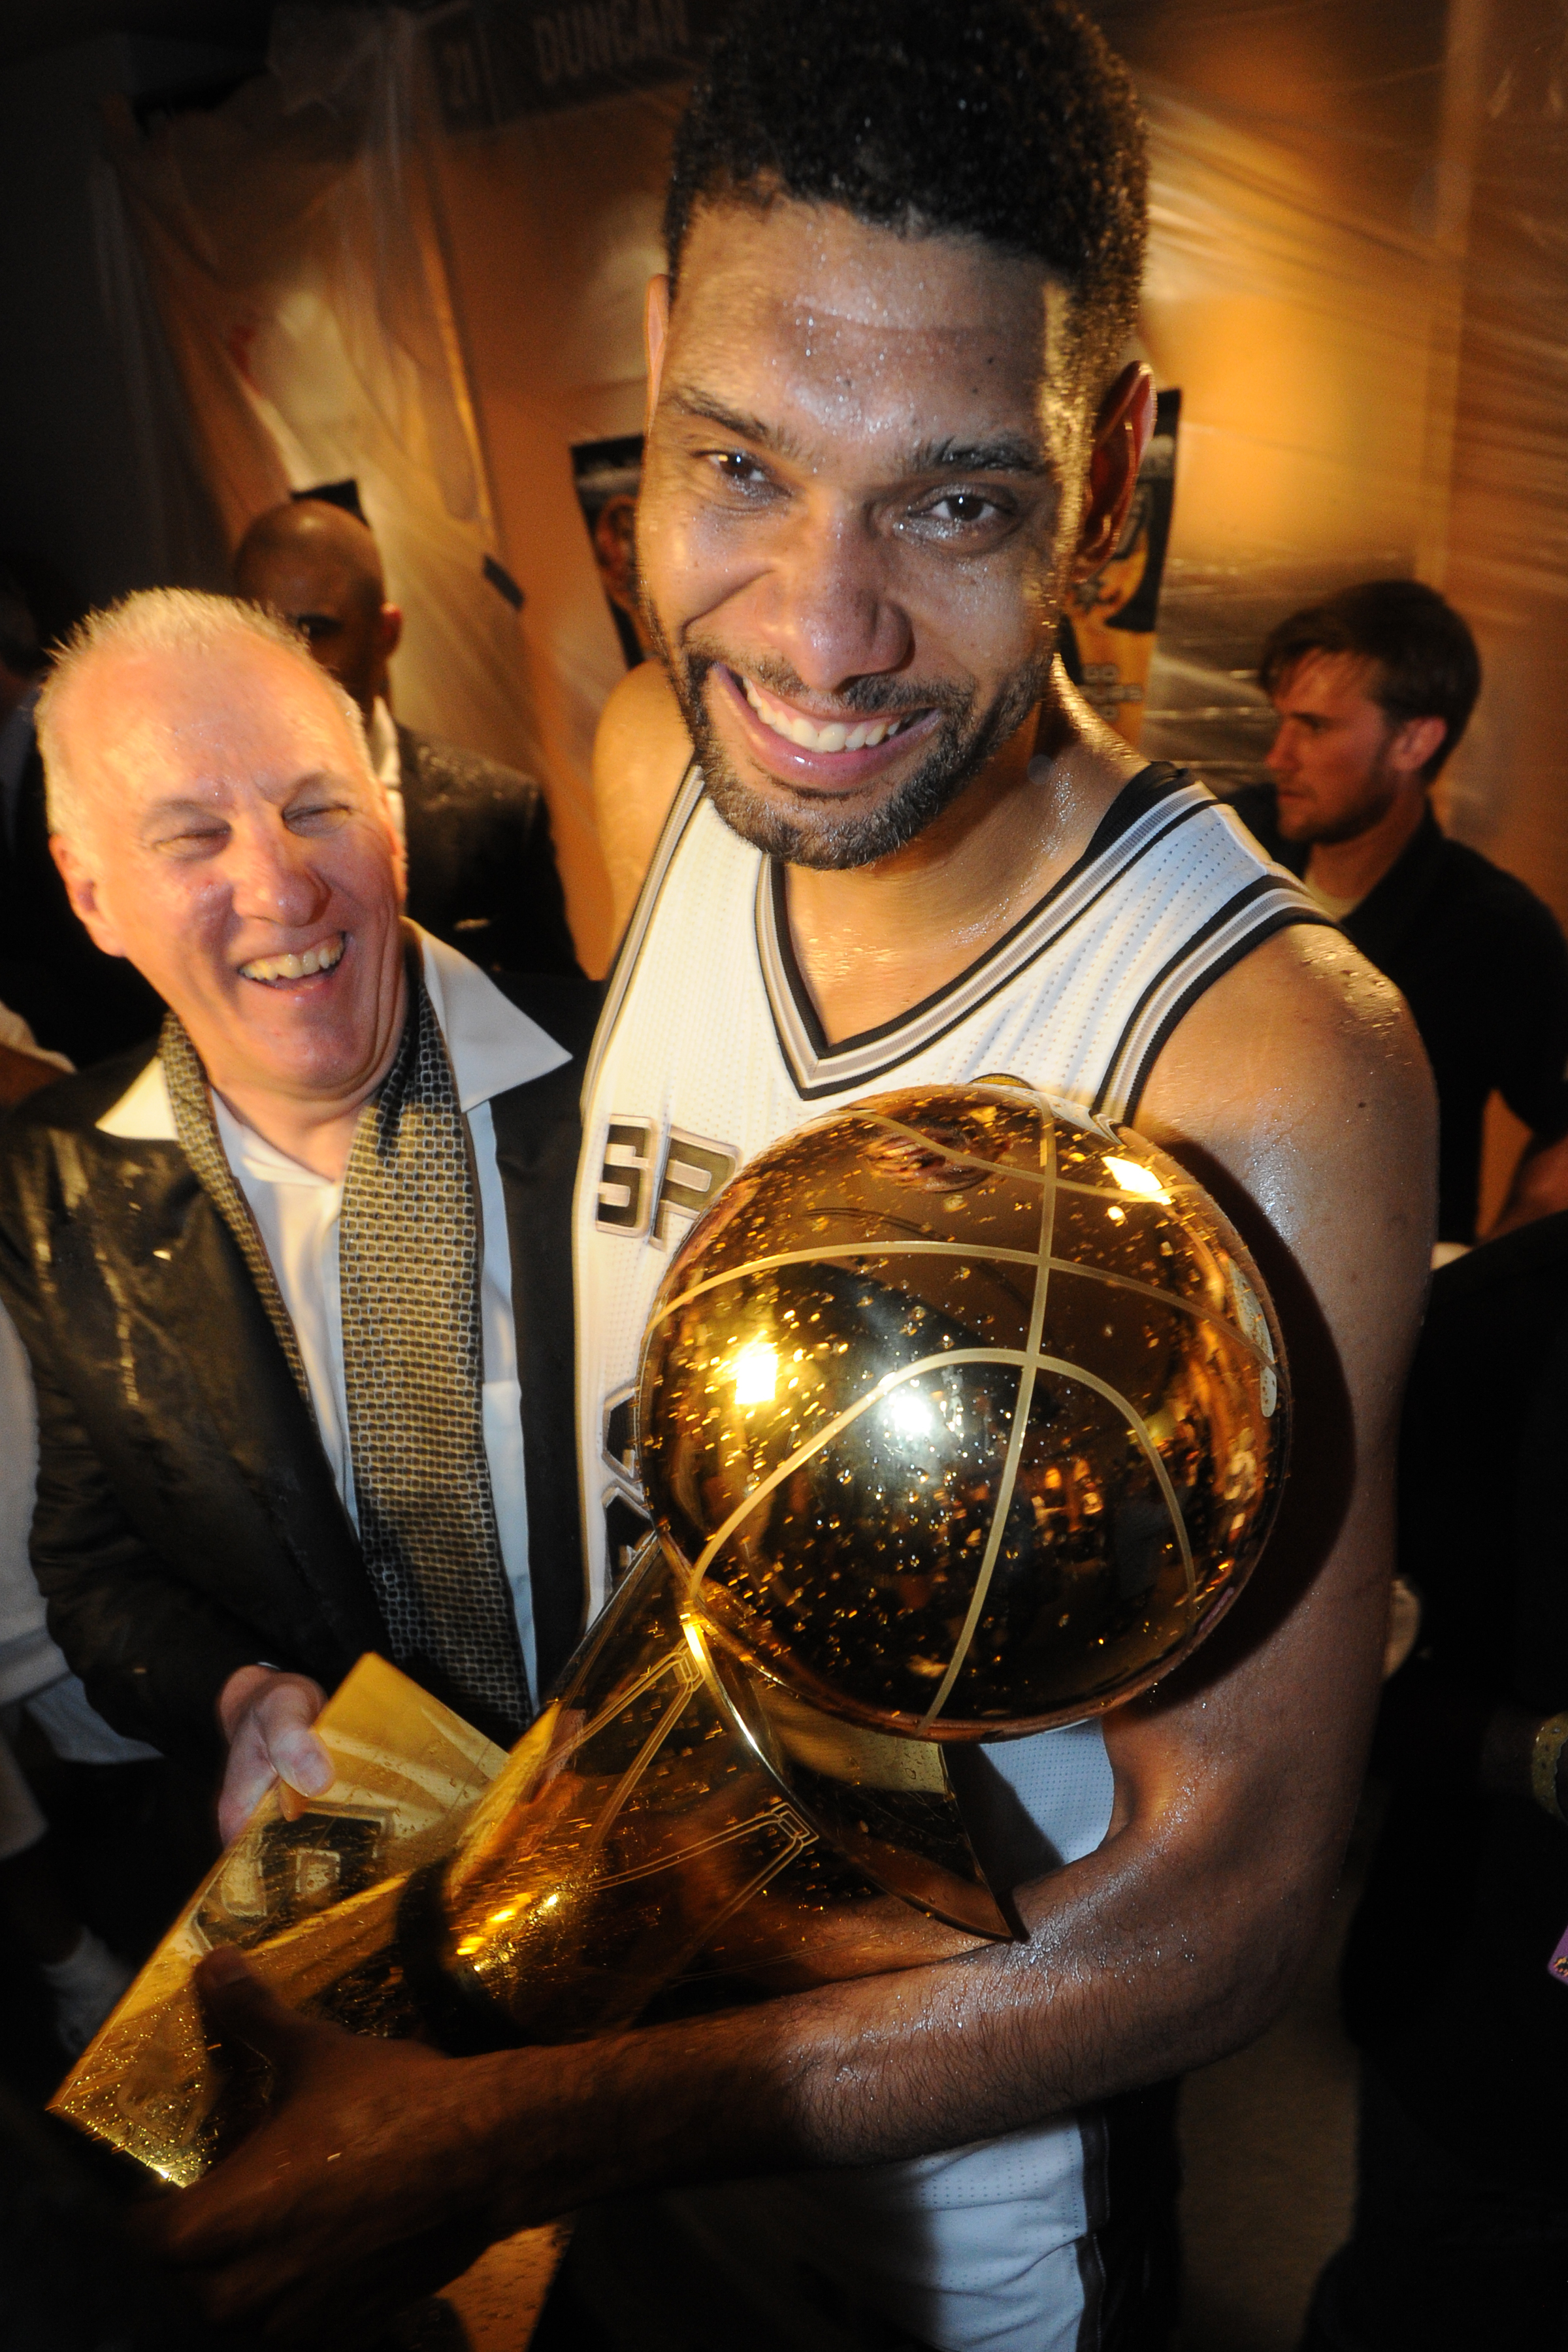 SAN ANTONIO, TX - JUNE 15: Tim Duncan #21 and Head Coach Gregg Popovich of the San Antonio Spurs looks on against the Miami Heat during Game Five of the 2014 NBA Finals between the Miami Heat and San Antonio Spurs at AT&T Center on June 15, 2014 in San An